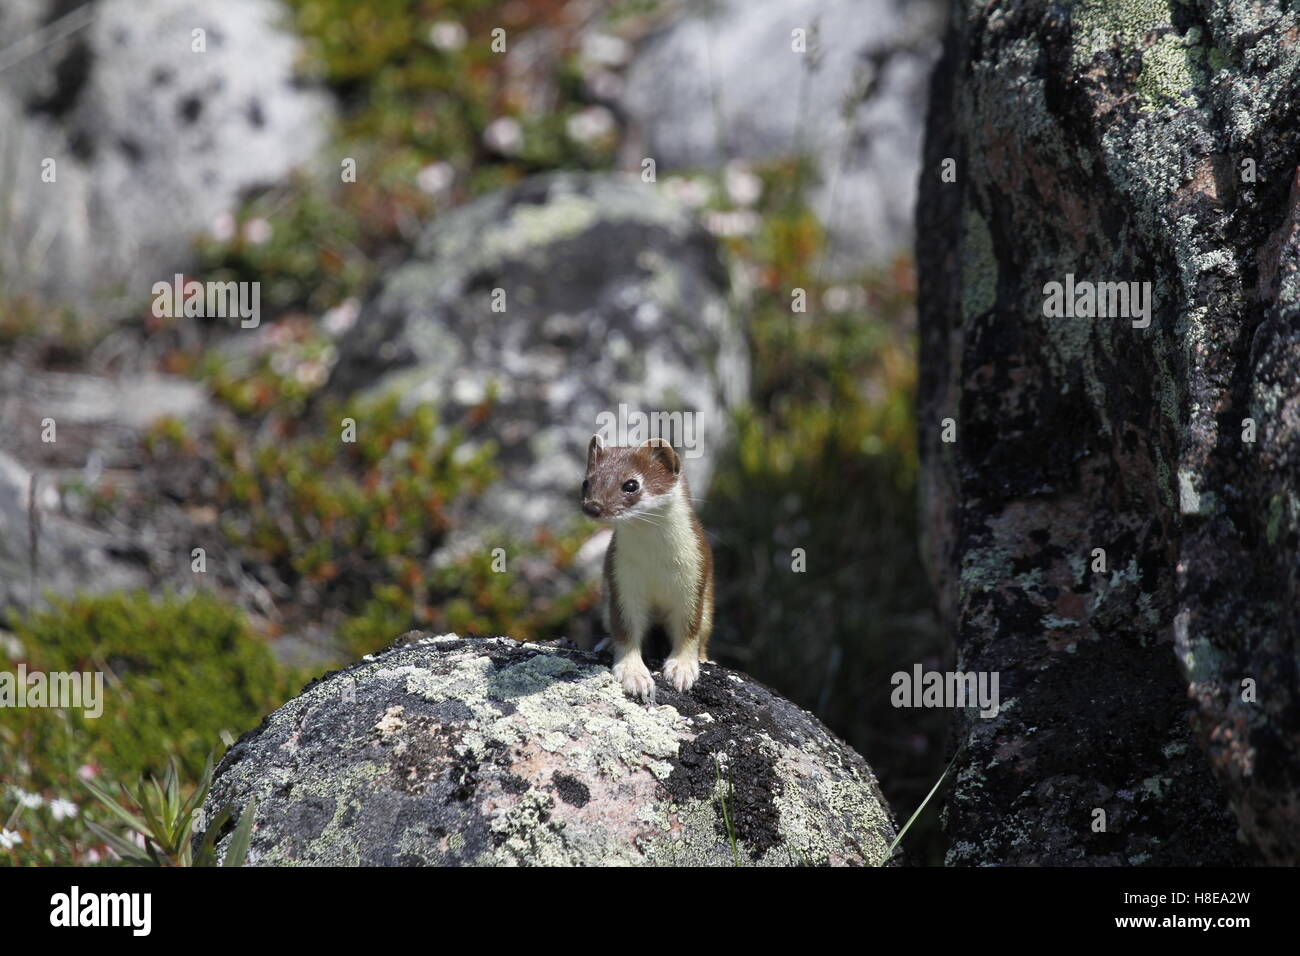 Adorable stoat or short-tailed weasel standing on a rock while hunting - Stock Image